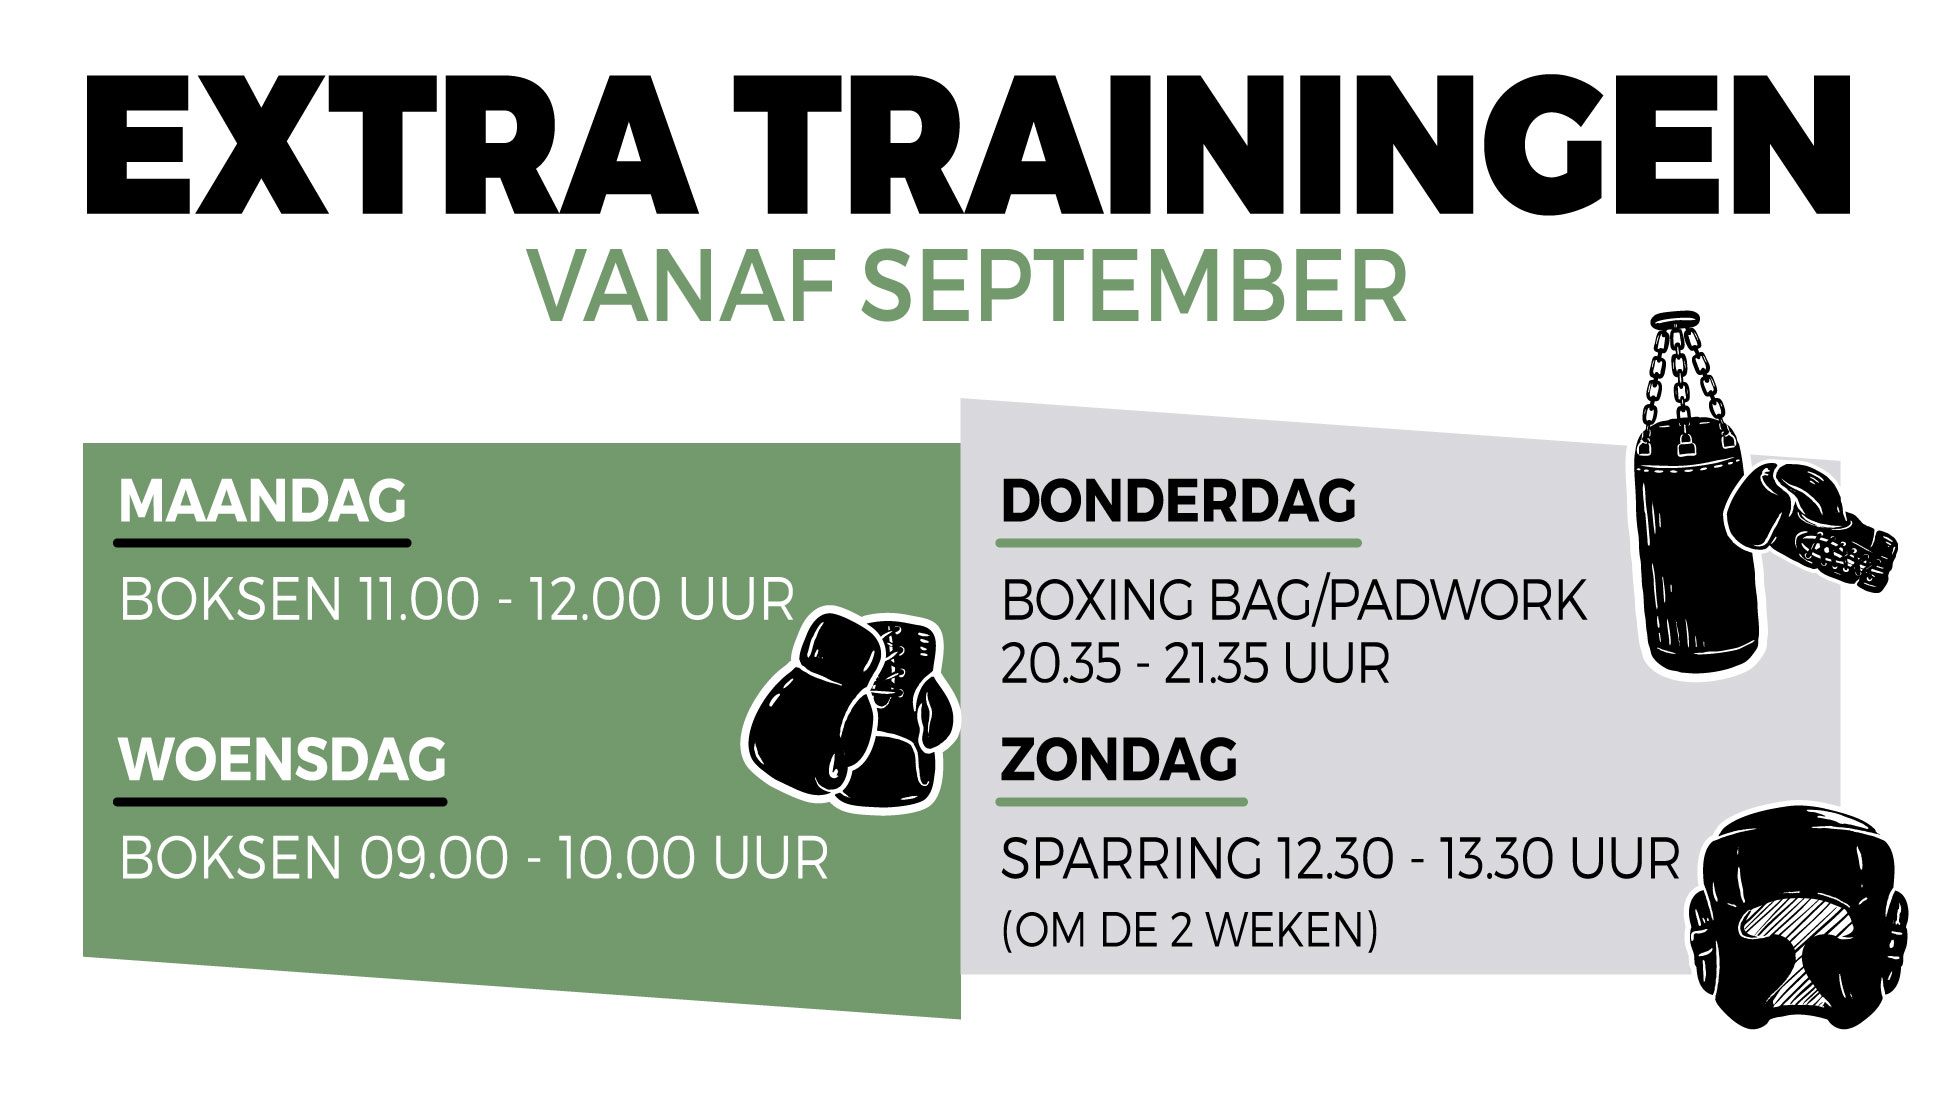 Extra trainingen va september